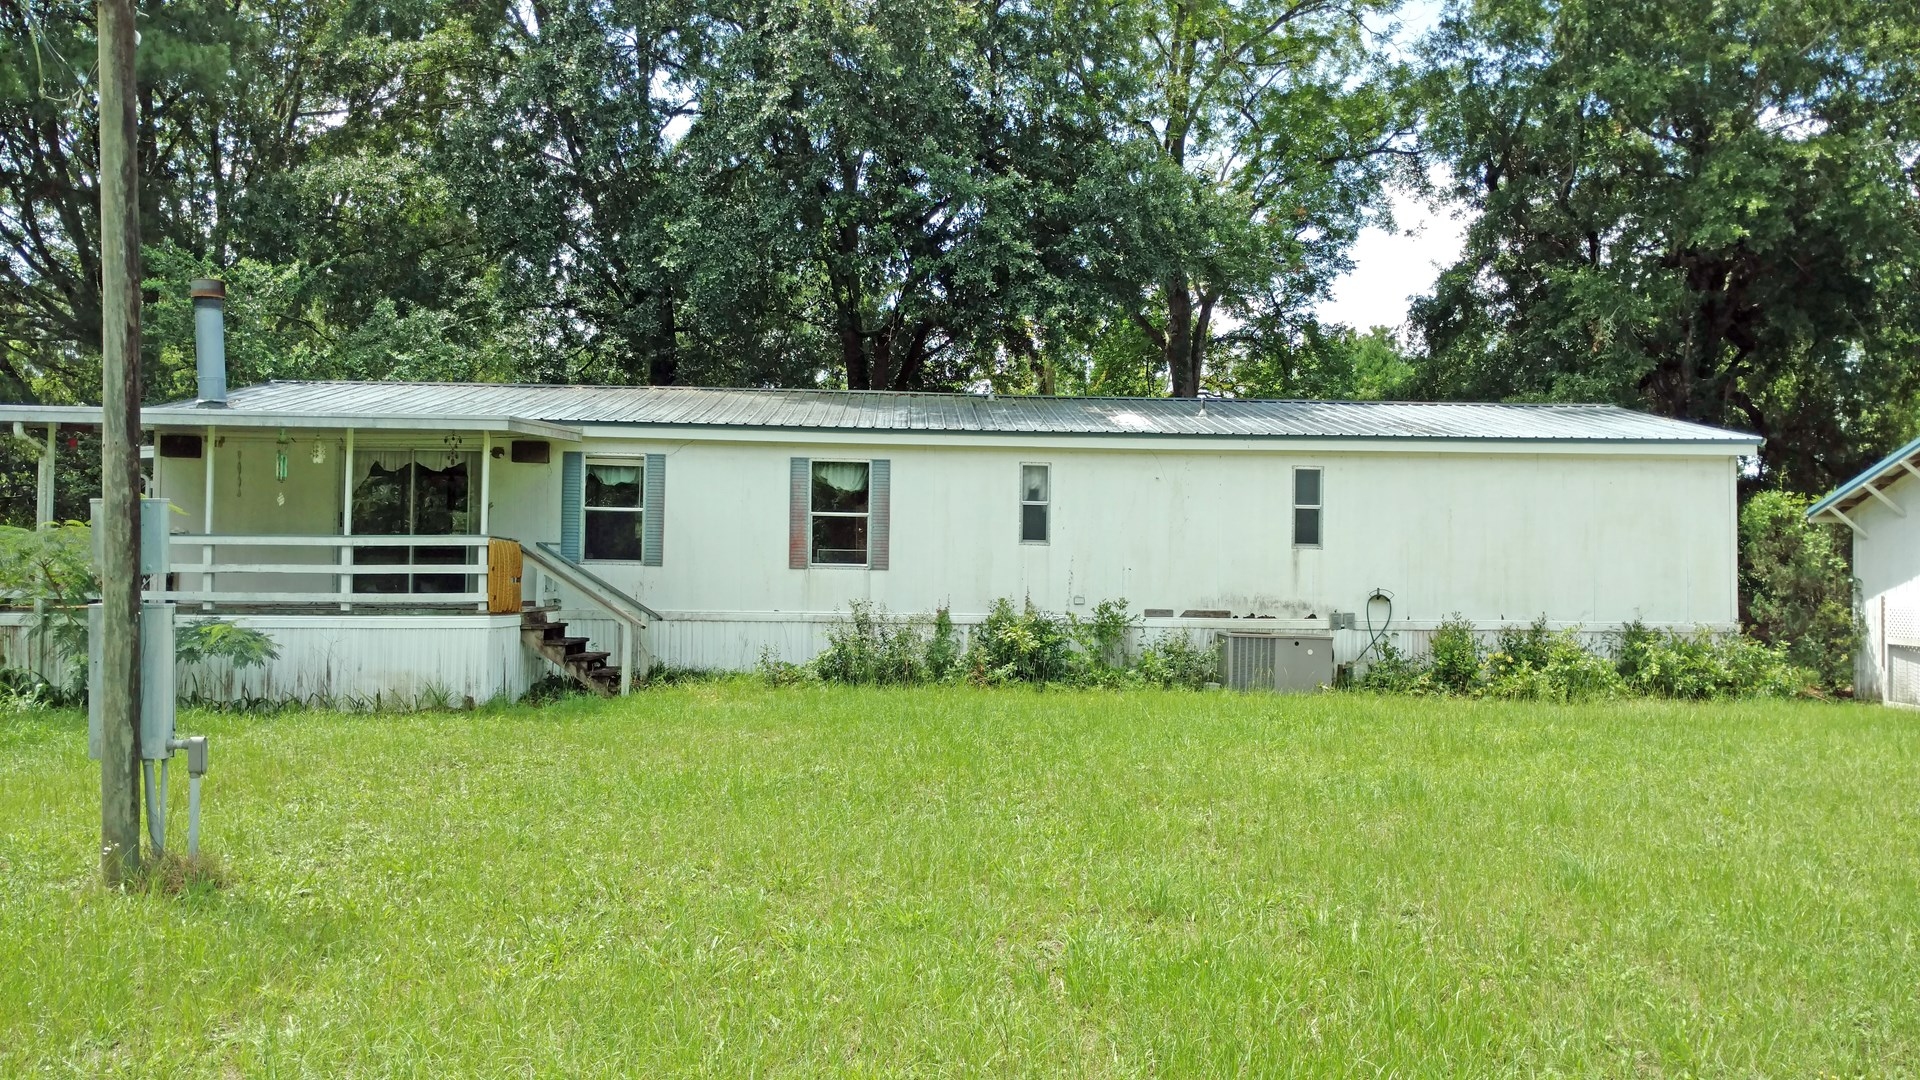 3BR/2BA DOUBLE WIDE IN PECAN ACRES S/D, LAKE CITY, FLORIDA